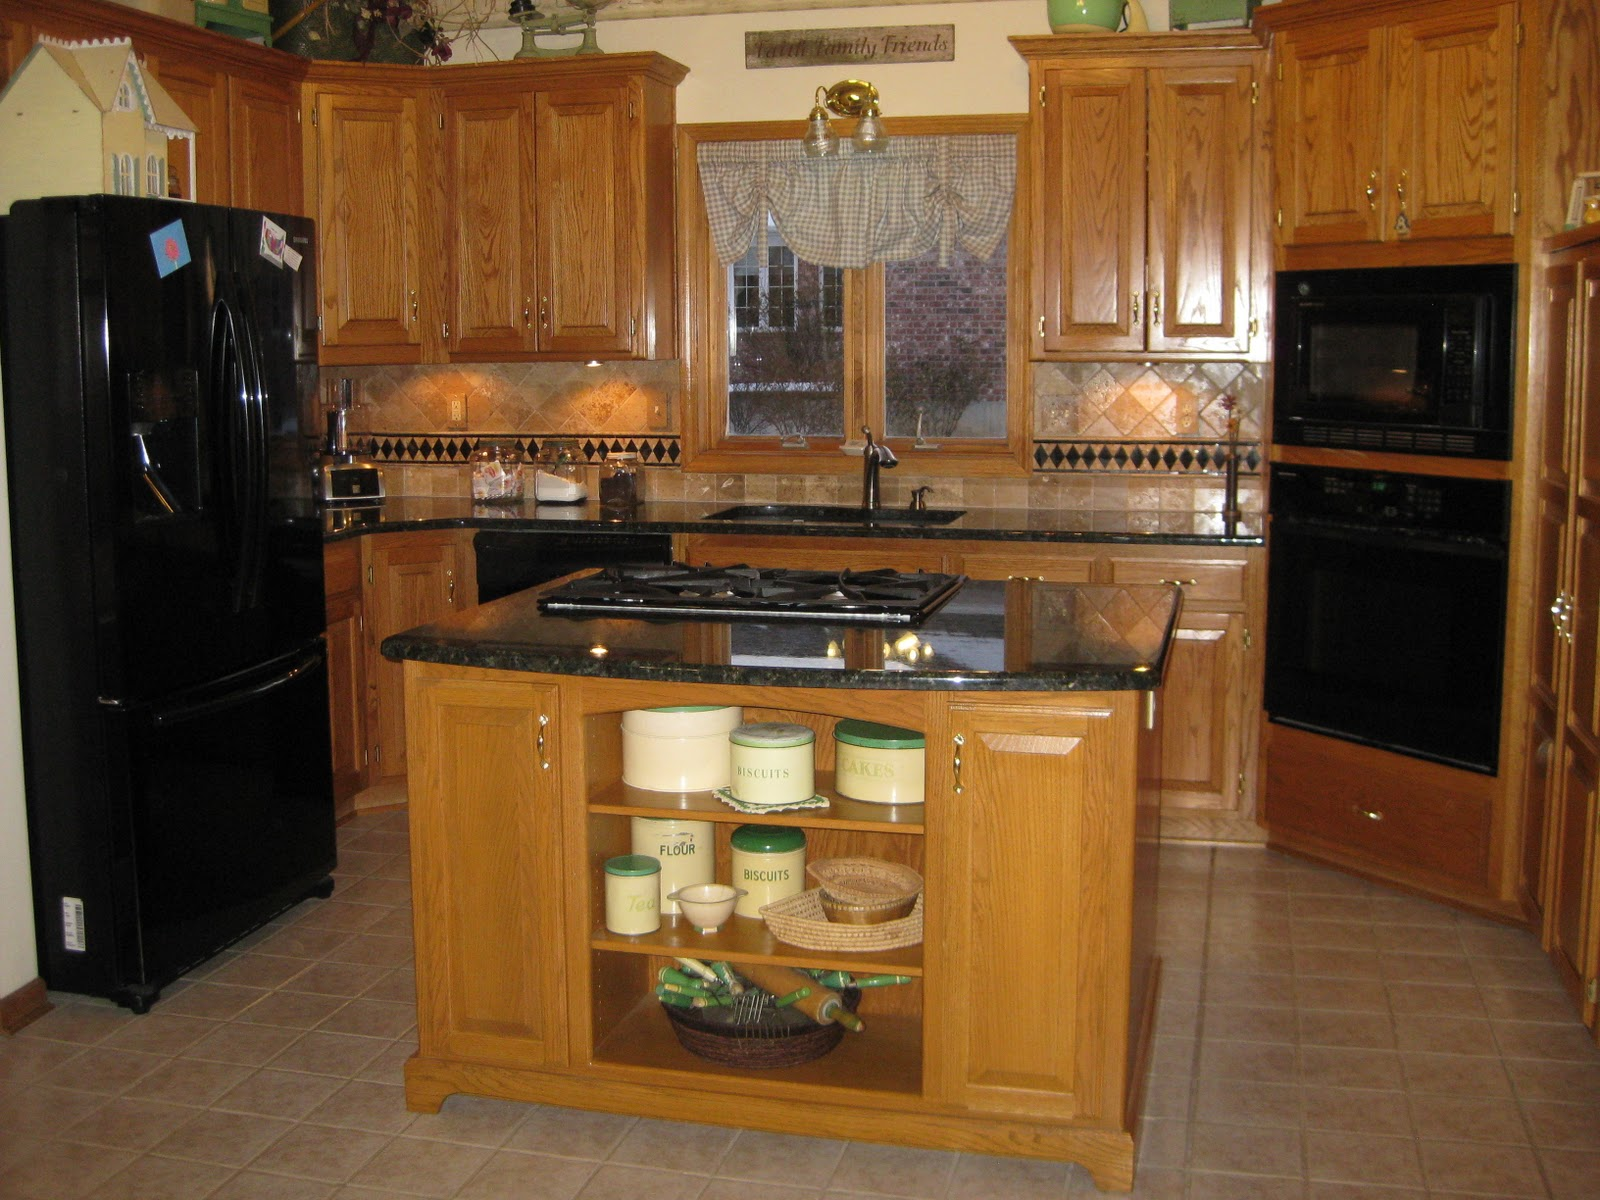 Stonewood wood work before after kitchen remodel - Kitchen remodel before after ...